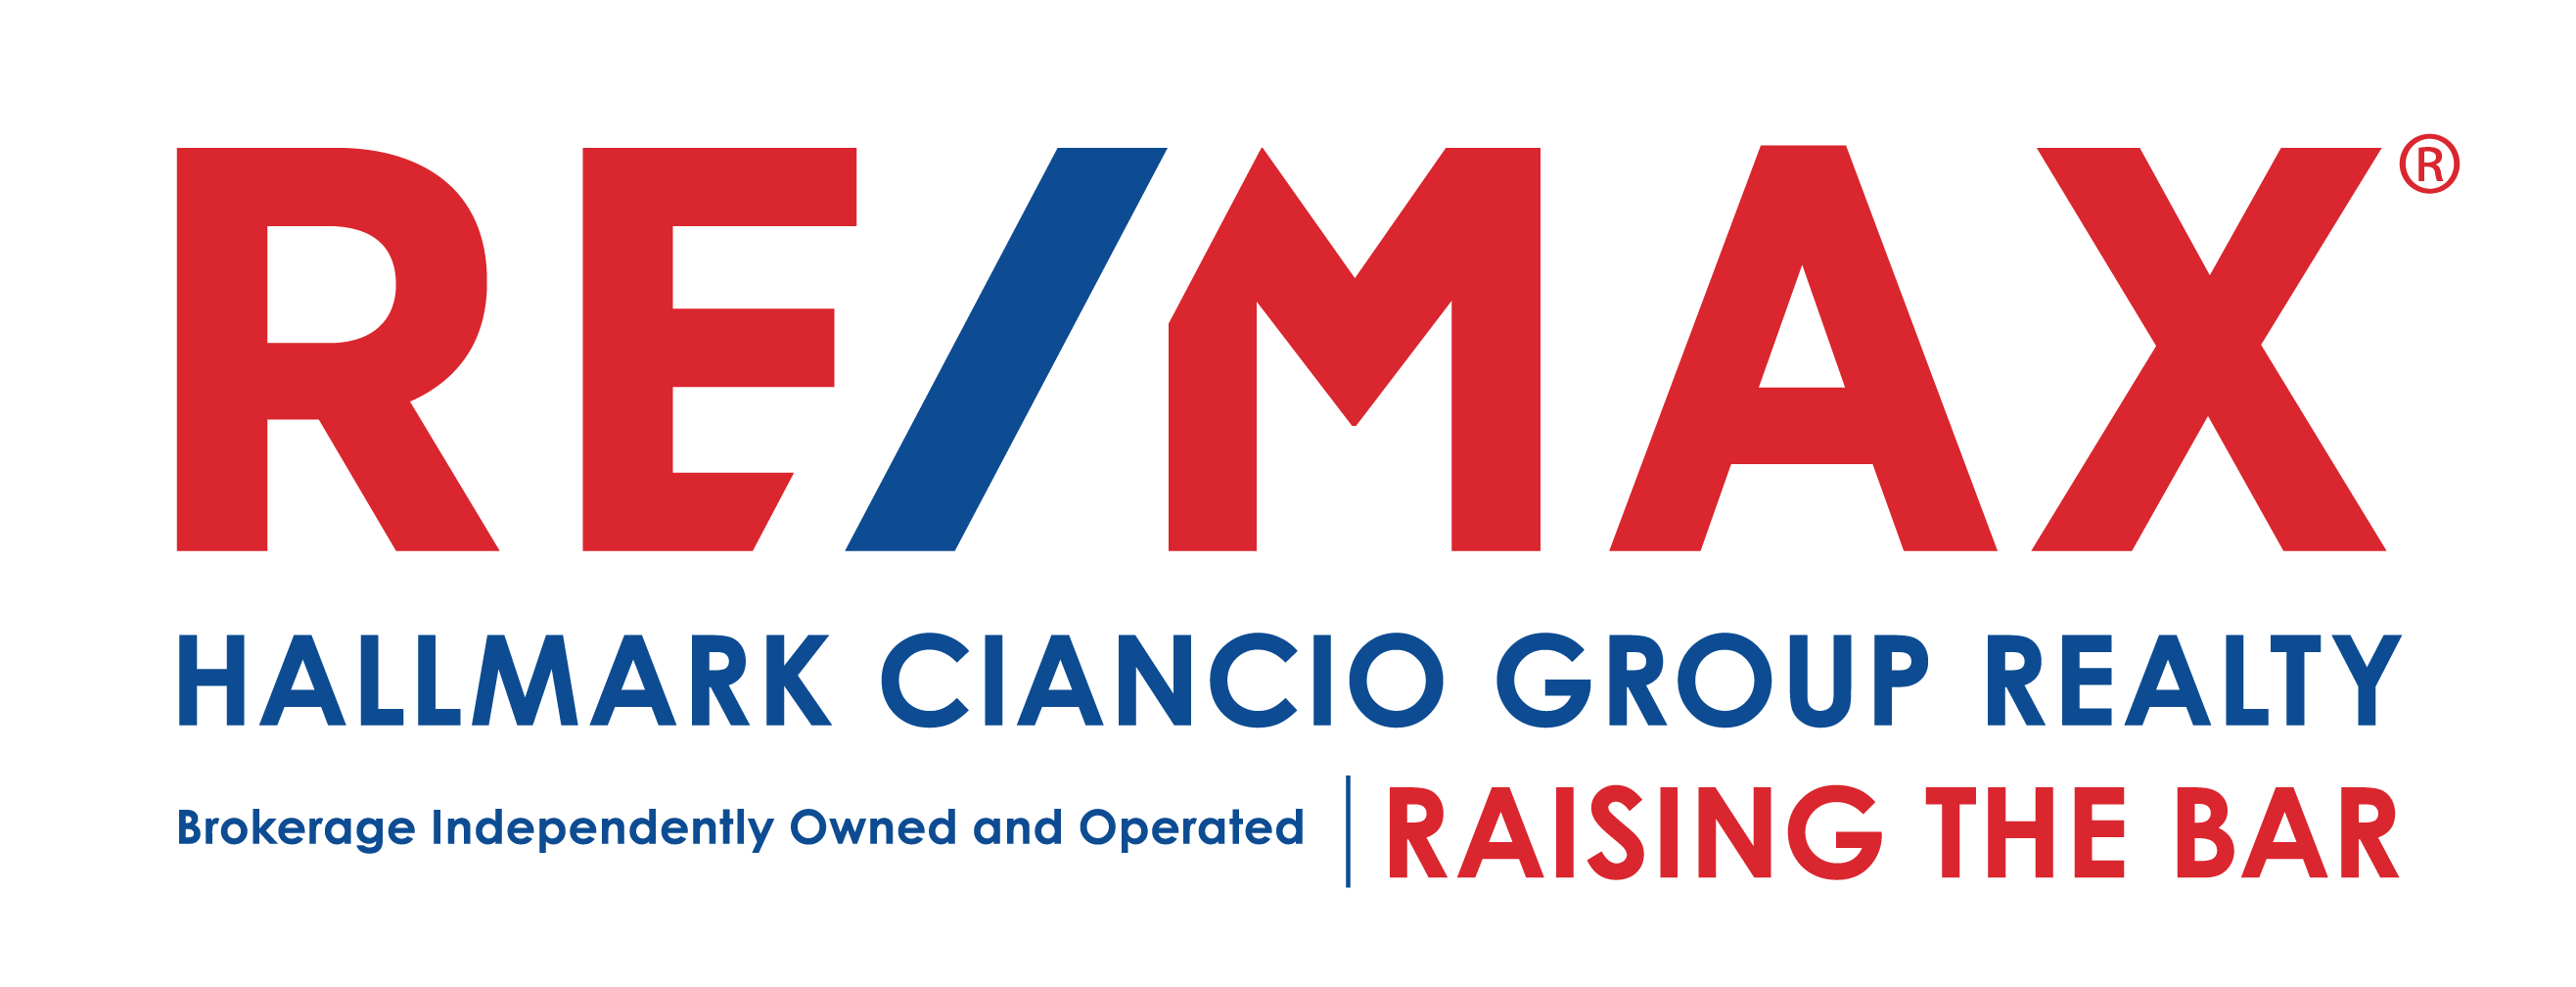 Re/Max Hallmark Ciancio Group